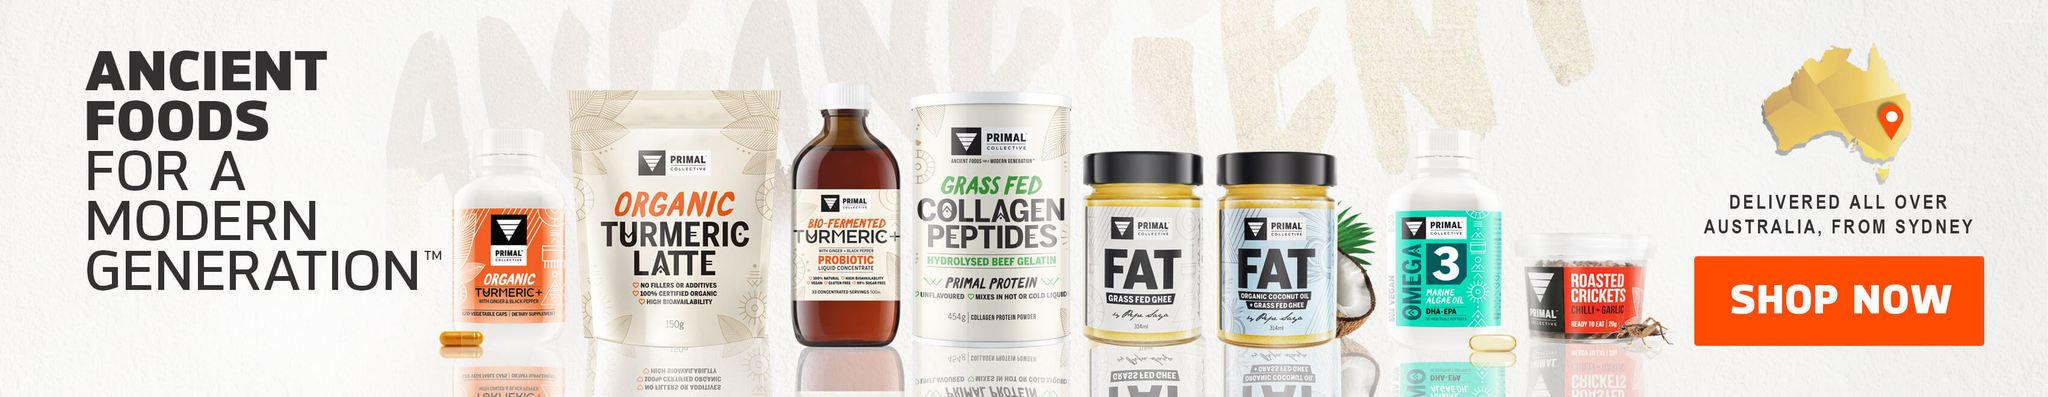 Primal Collective Ancient Foods and Supplements